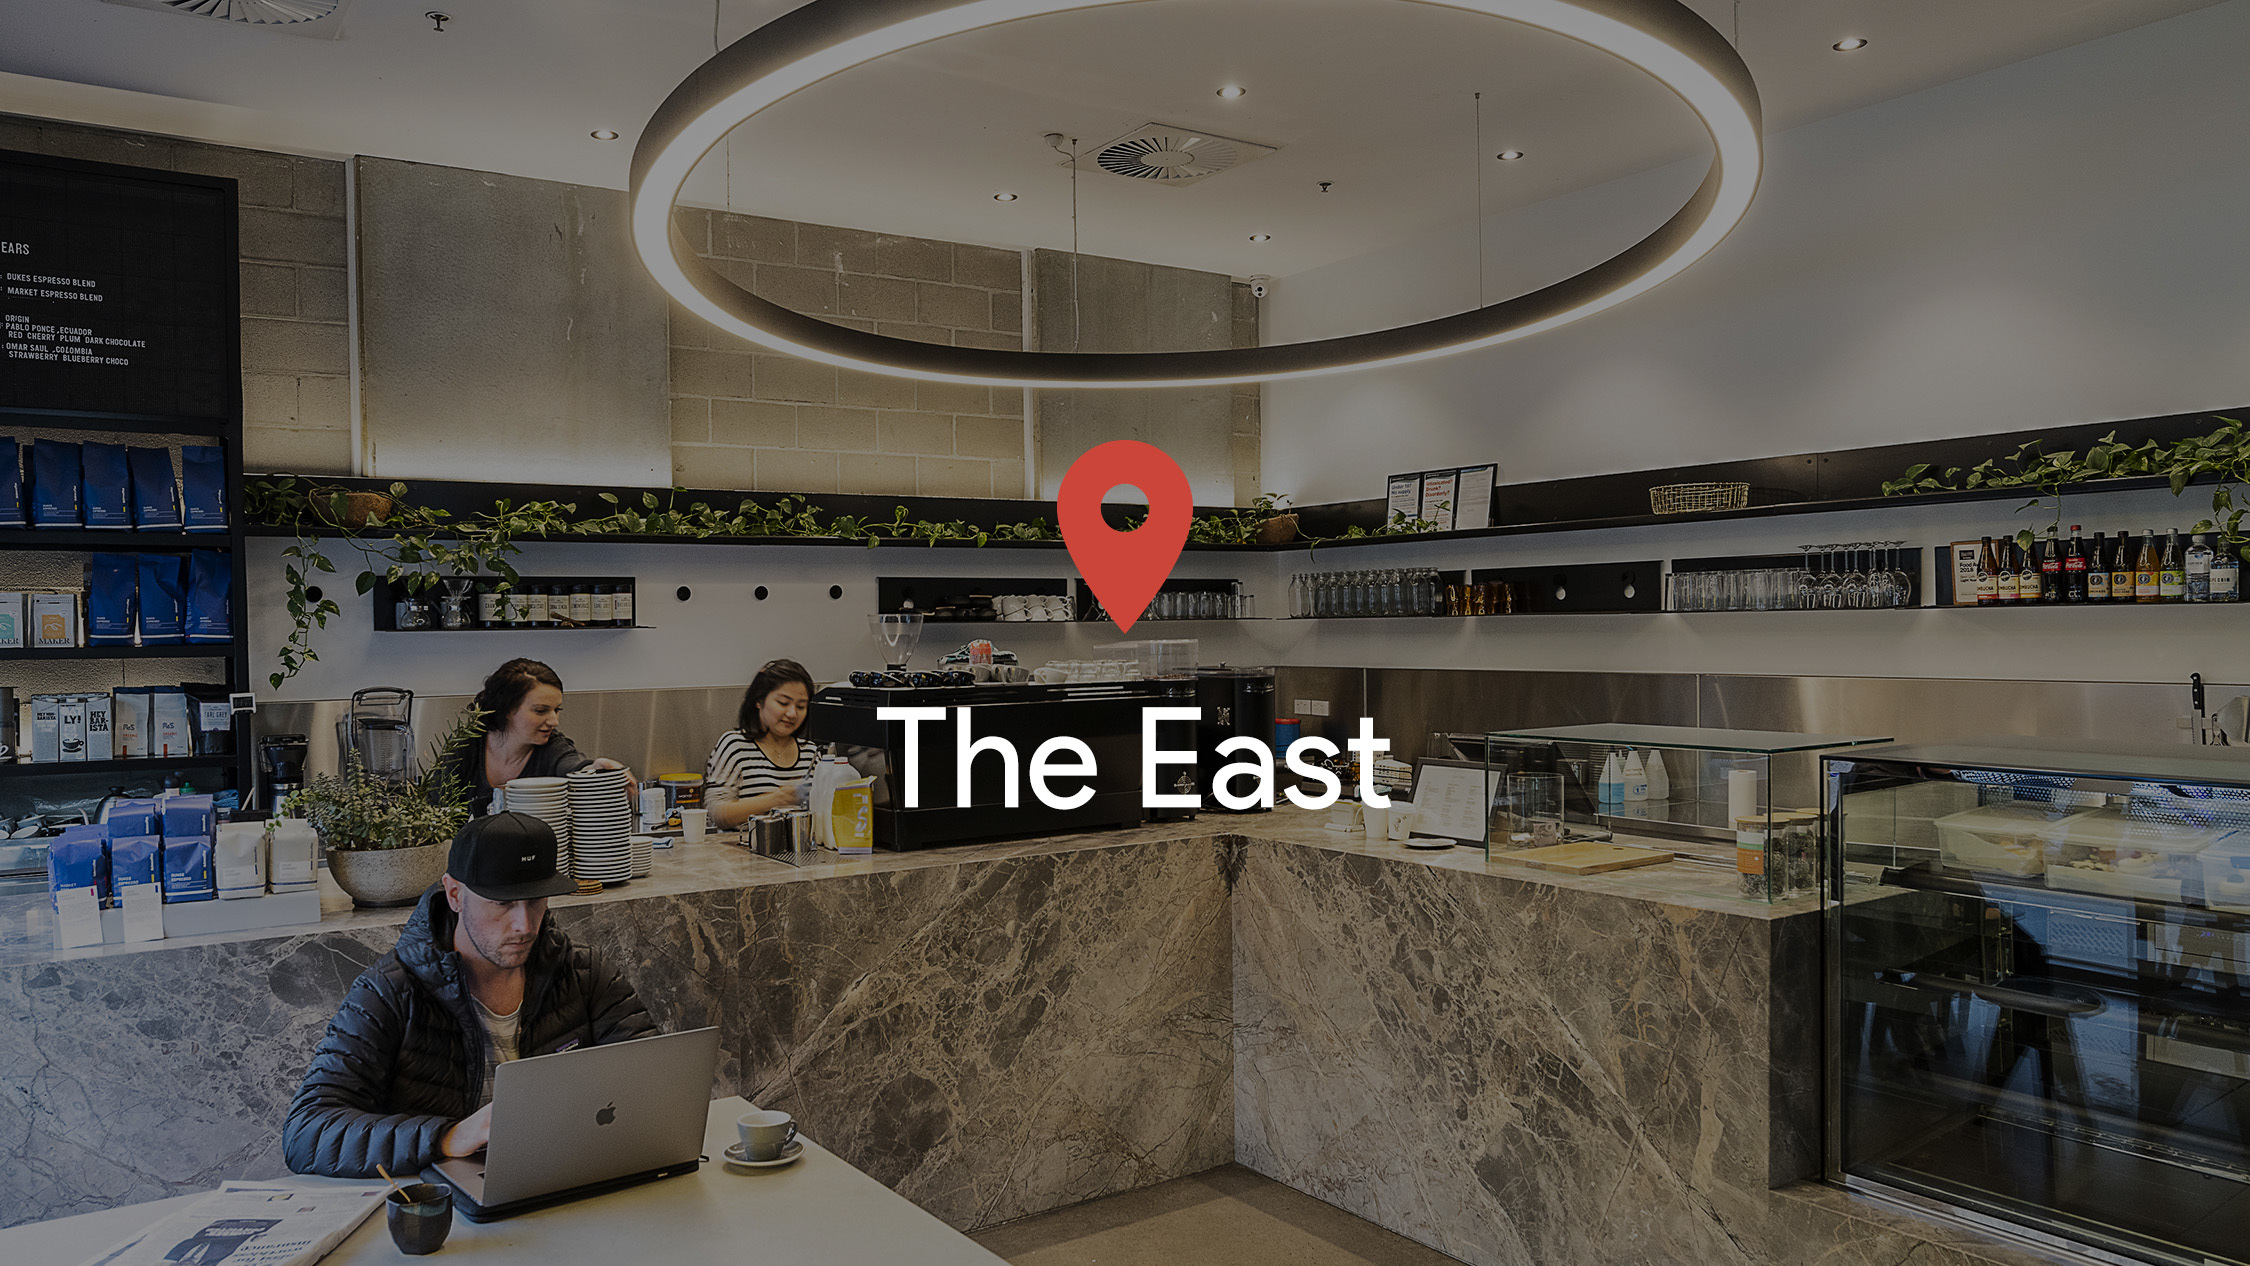 Drop a pin in: The East